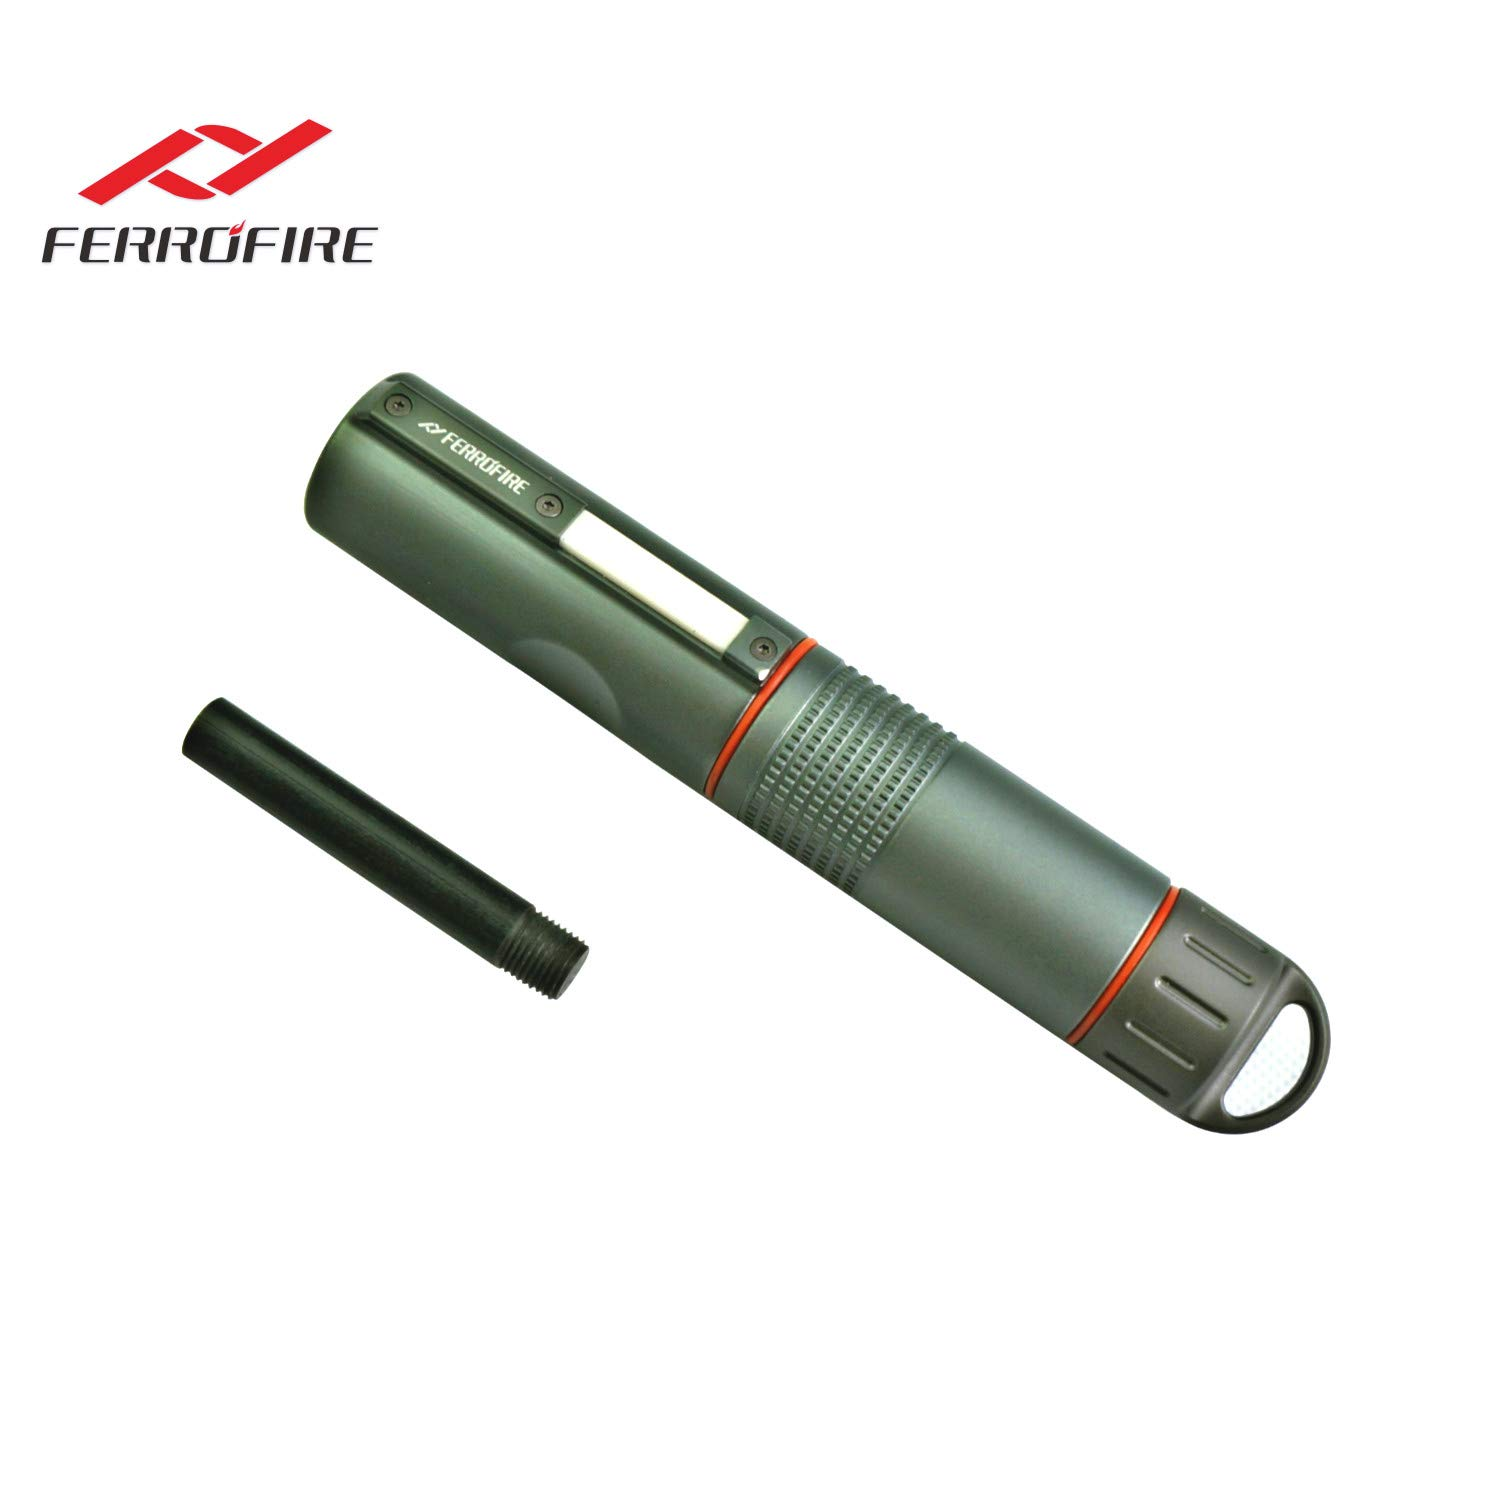 FERROFIRE Fire Starter XXL (S10E1) 2/5 inch diameter replaceable ferro rod + 1 standby rod, compact package. Truly for All Weathers and A Lifetime of Use, Waterproof Capsule, Built-in Striker, Compass by FERROFIRE